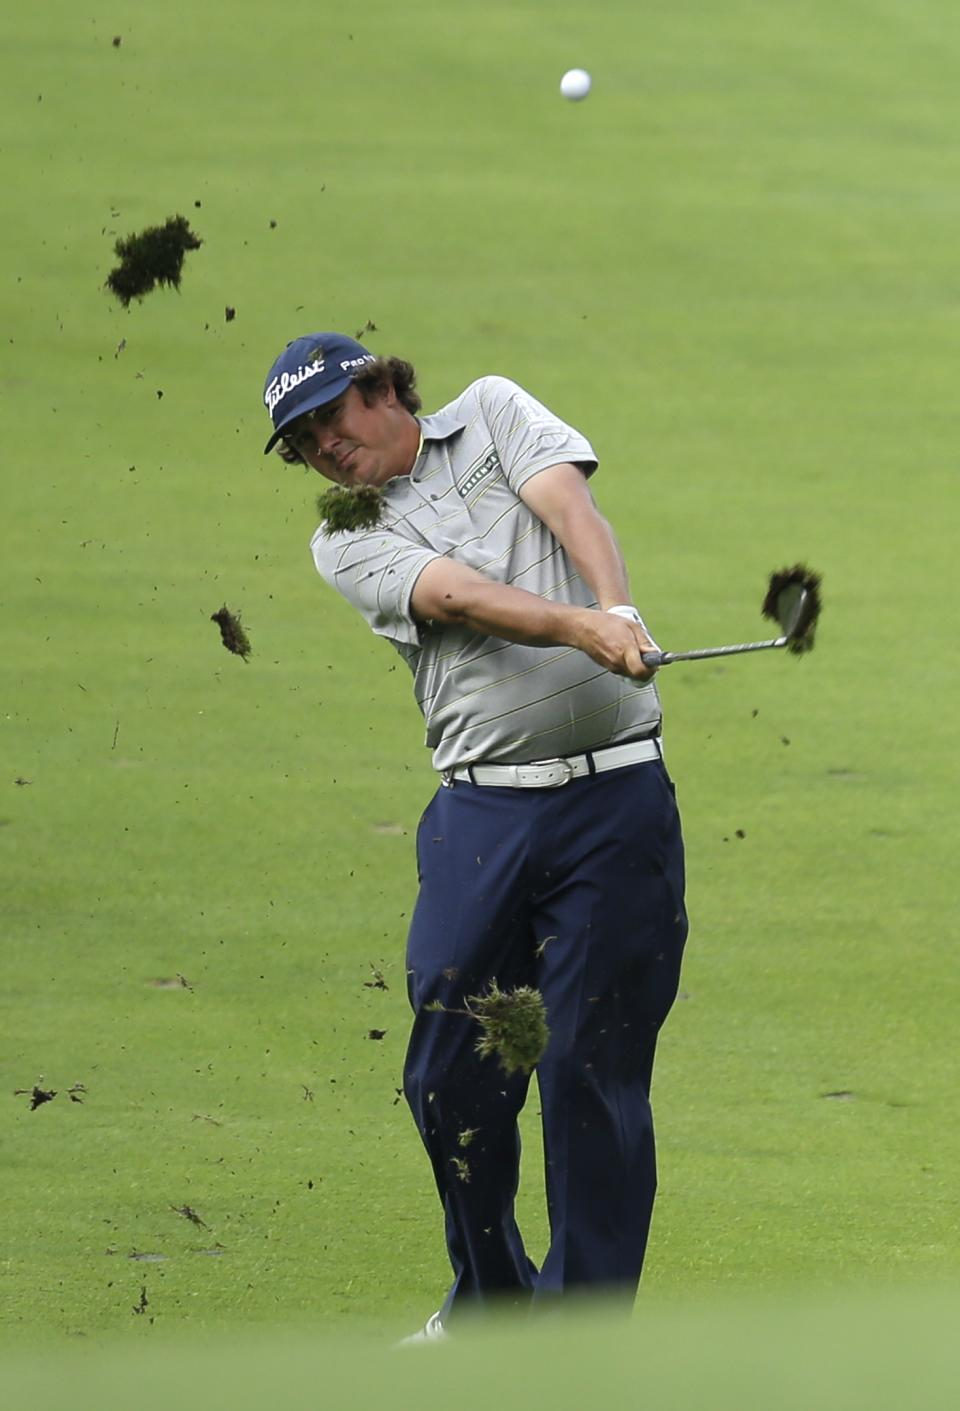 Jason Dufner hits from the fairway on the 14th hole during the second round of the PGA Championship golf tournament at Oak Hill Country Club, Friday, Aug. 9, 2013, in Pittsford, N.Y. (AP Photo/Charlie Neibergall)